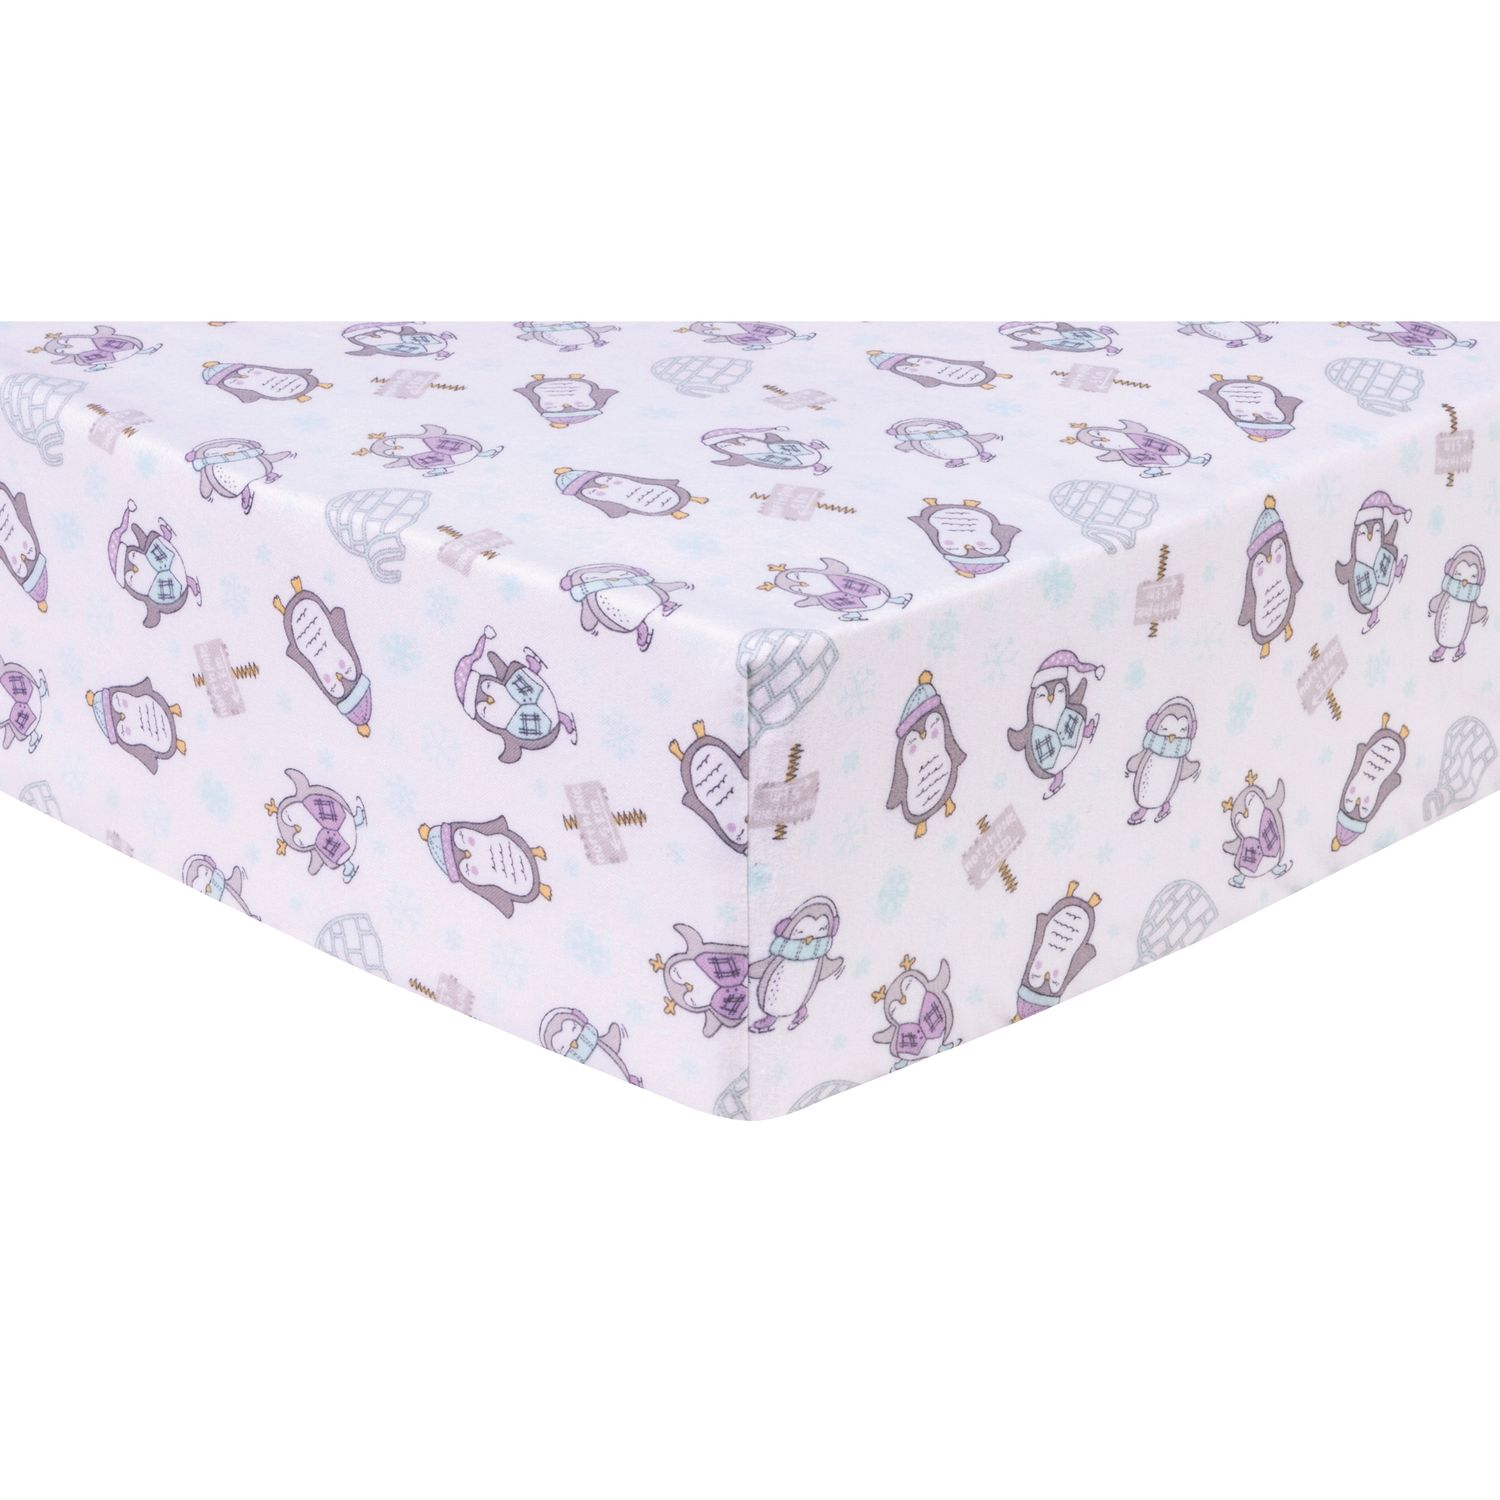 Trend Lab Dinosaur Palm Deluxe Flannel Fitted Crib Sheet